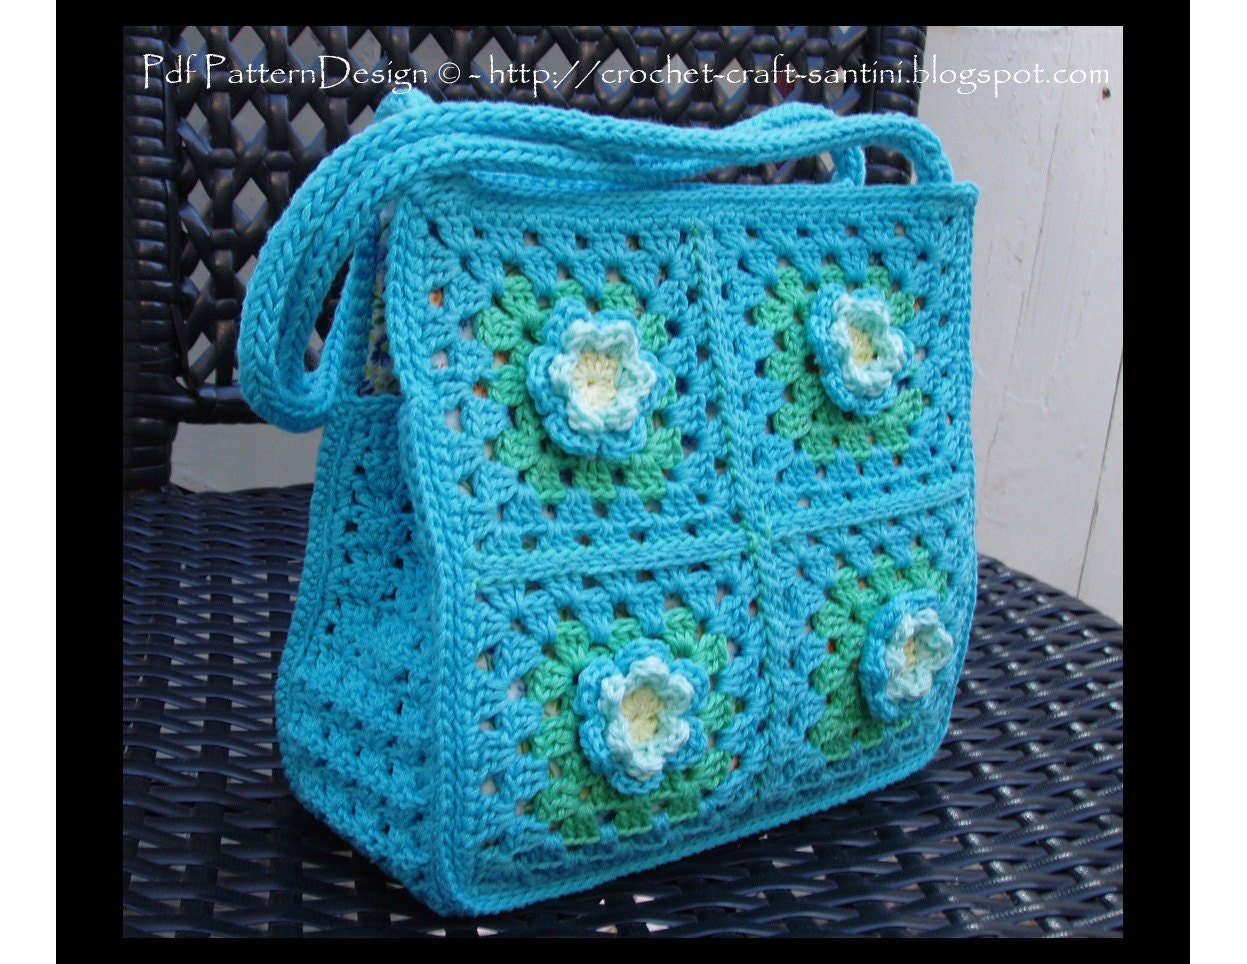 Granny Square Bag-Purse Crochet Pattern with by PdfPatternDesign